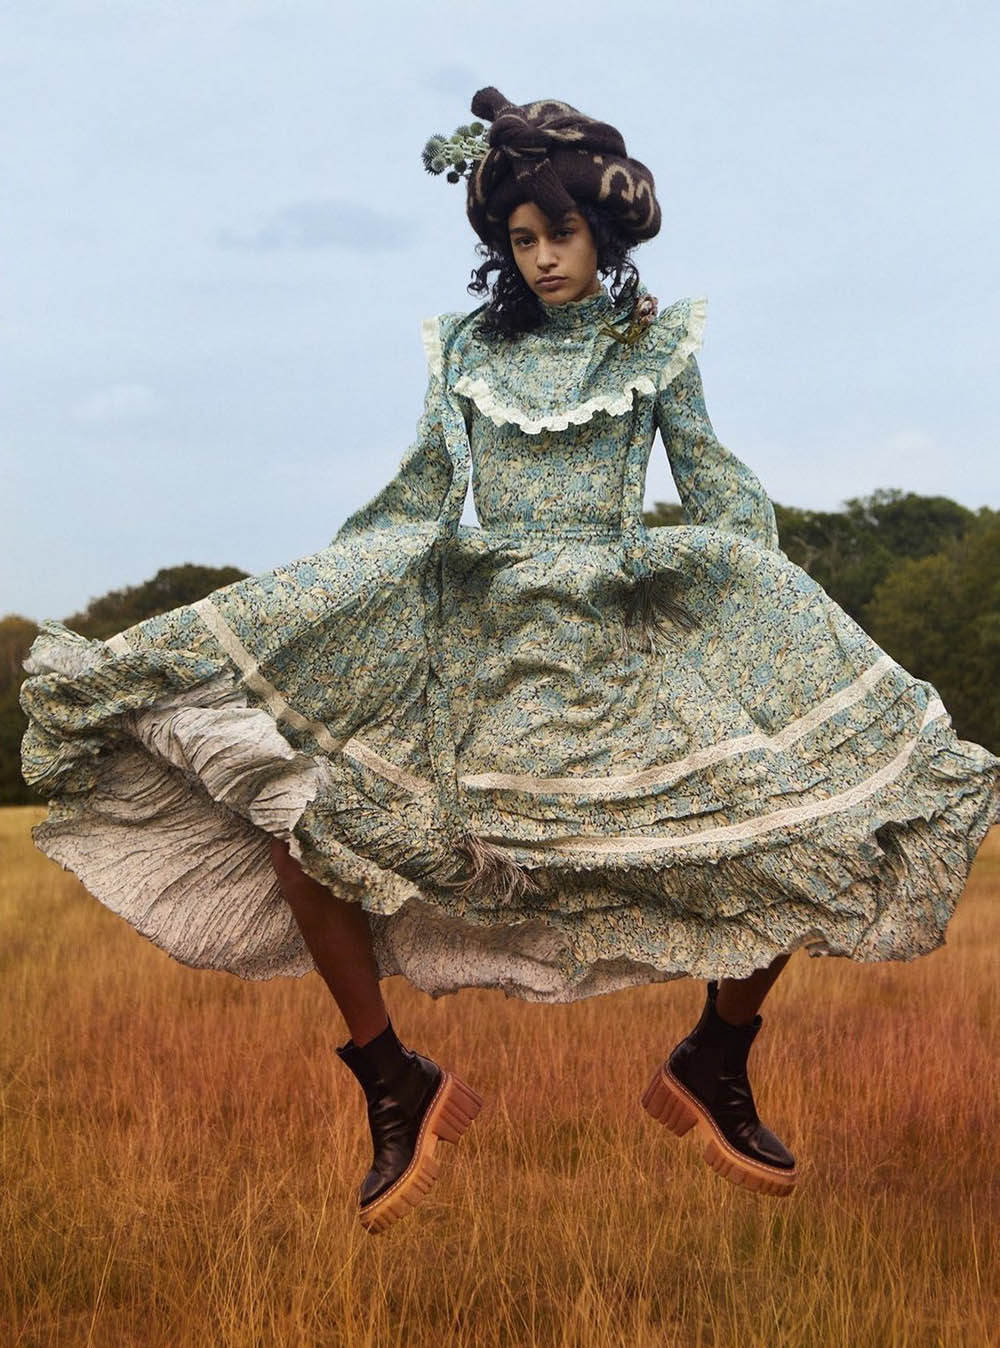 Damaris Goddrie by Quentin Jones for Harper's Bazaar UK November 2020